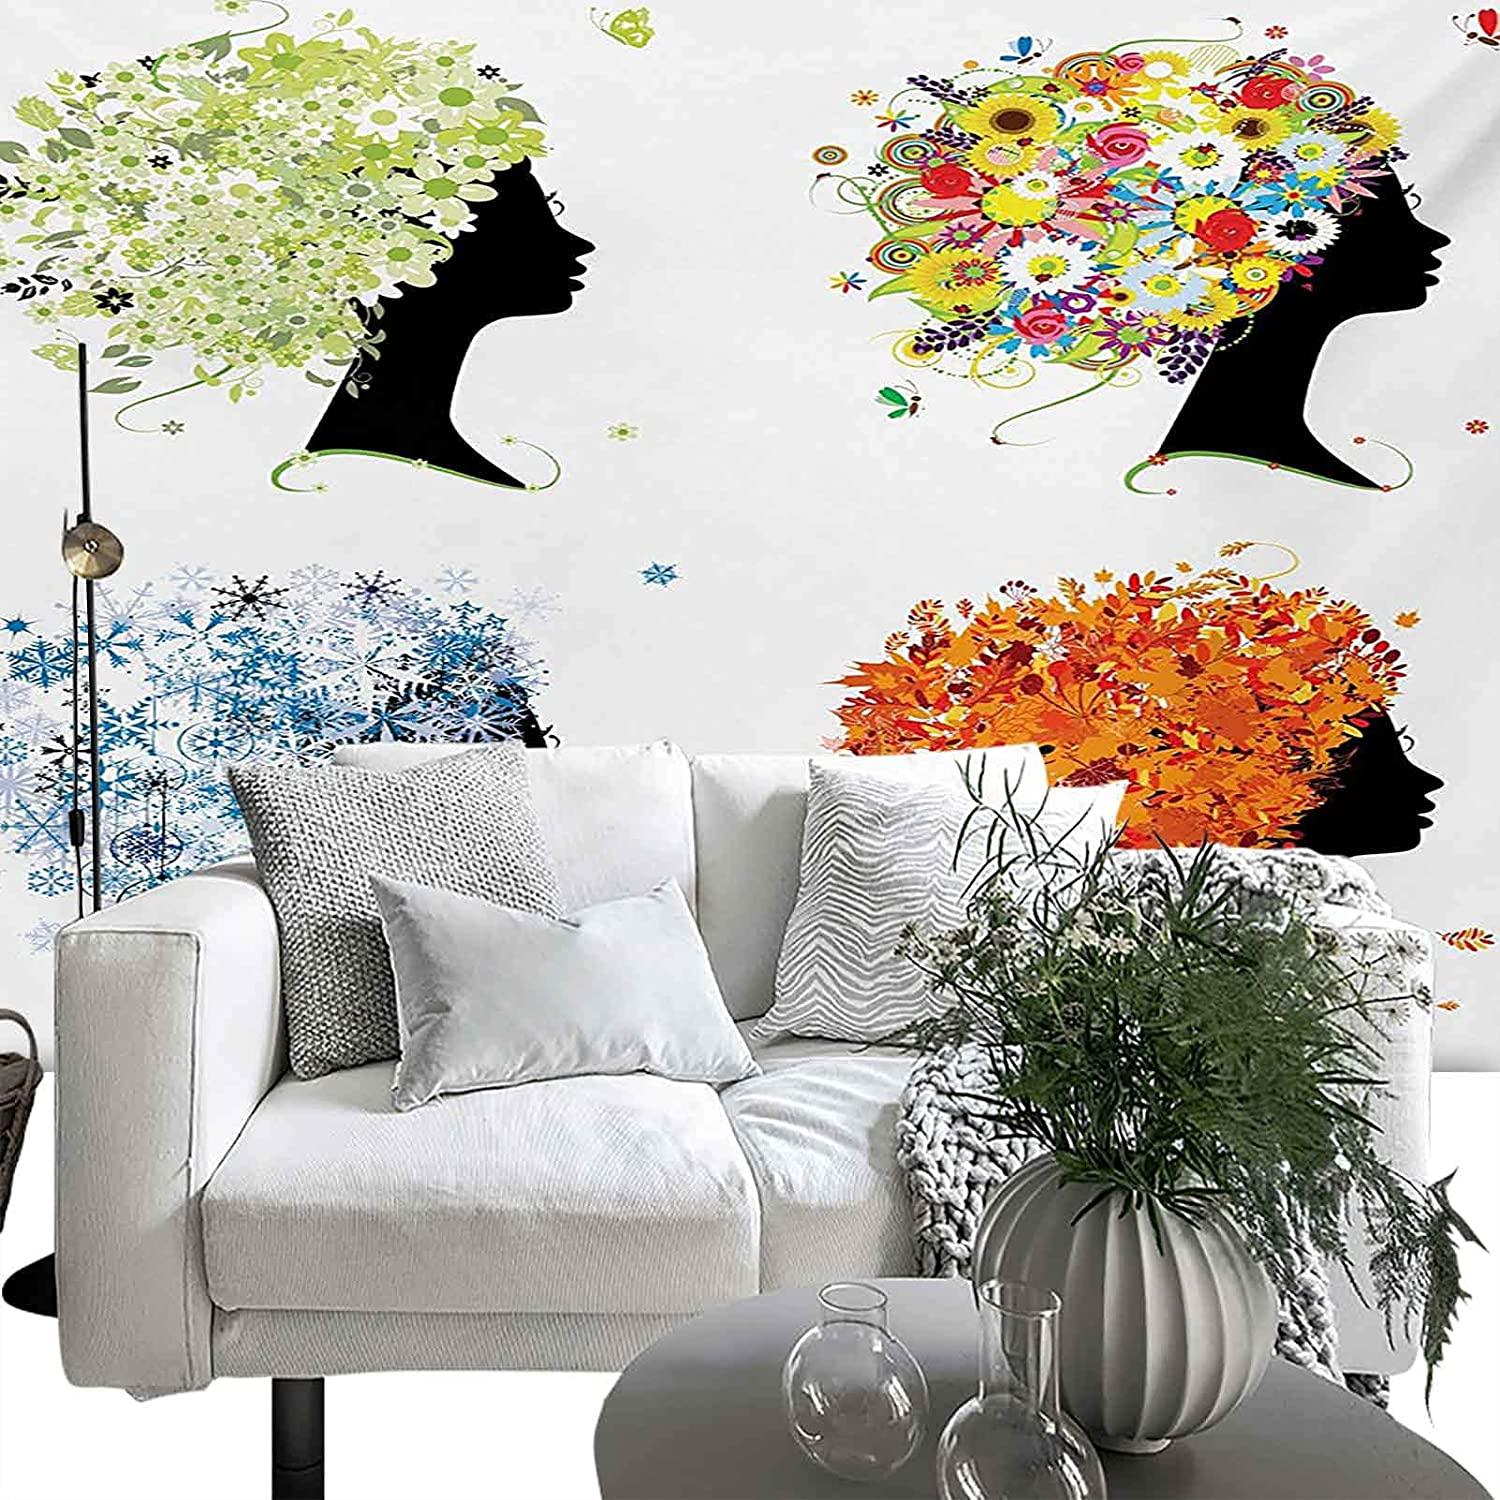 Wall Fixed price for sale Mural Colorful Four Season Woman New color Design Toned Warm Hair Lea